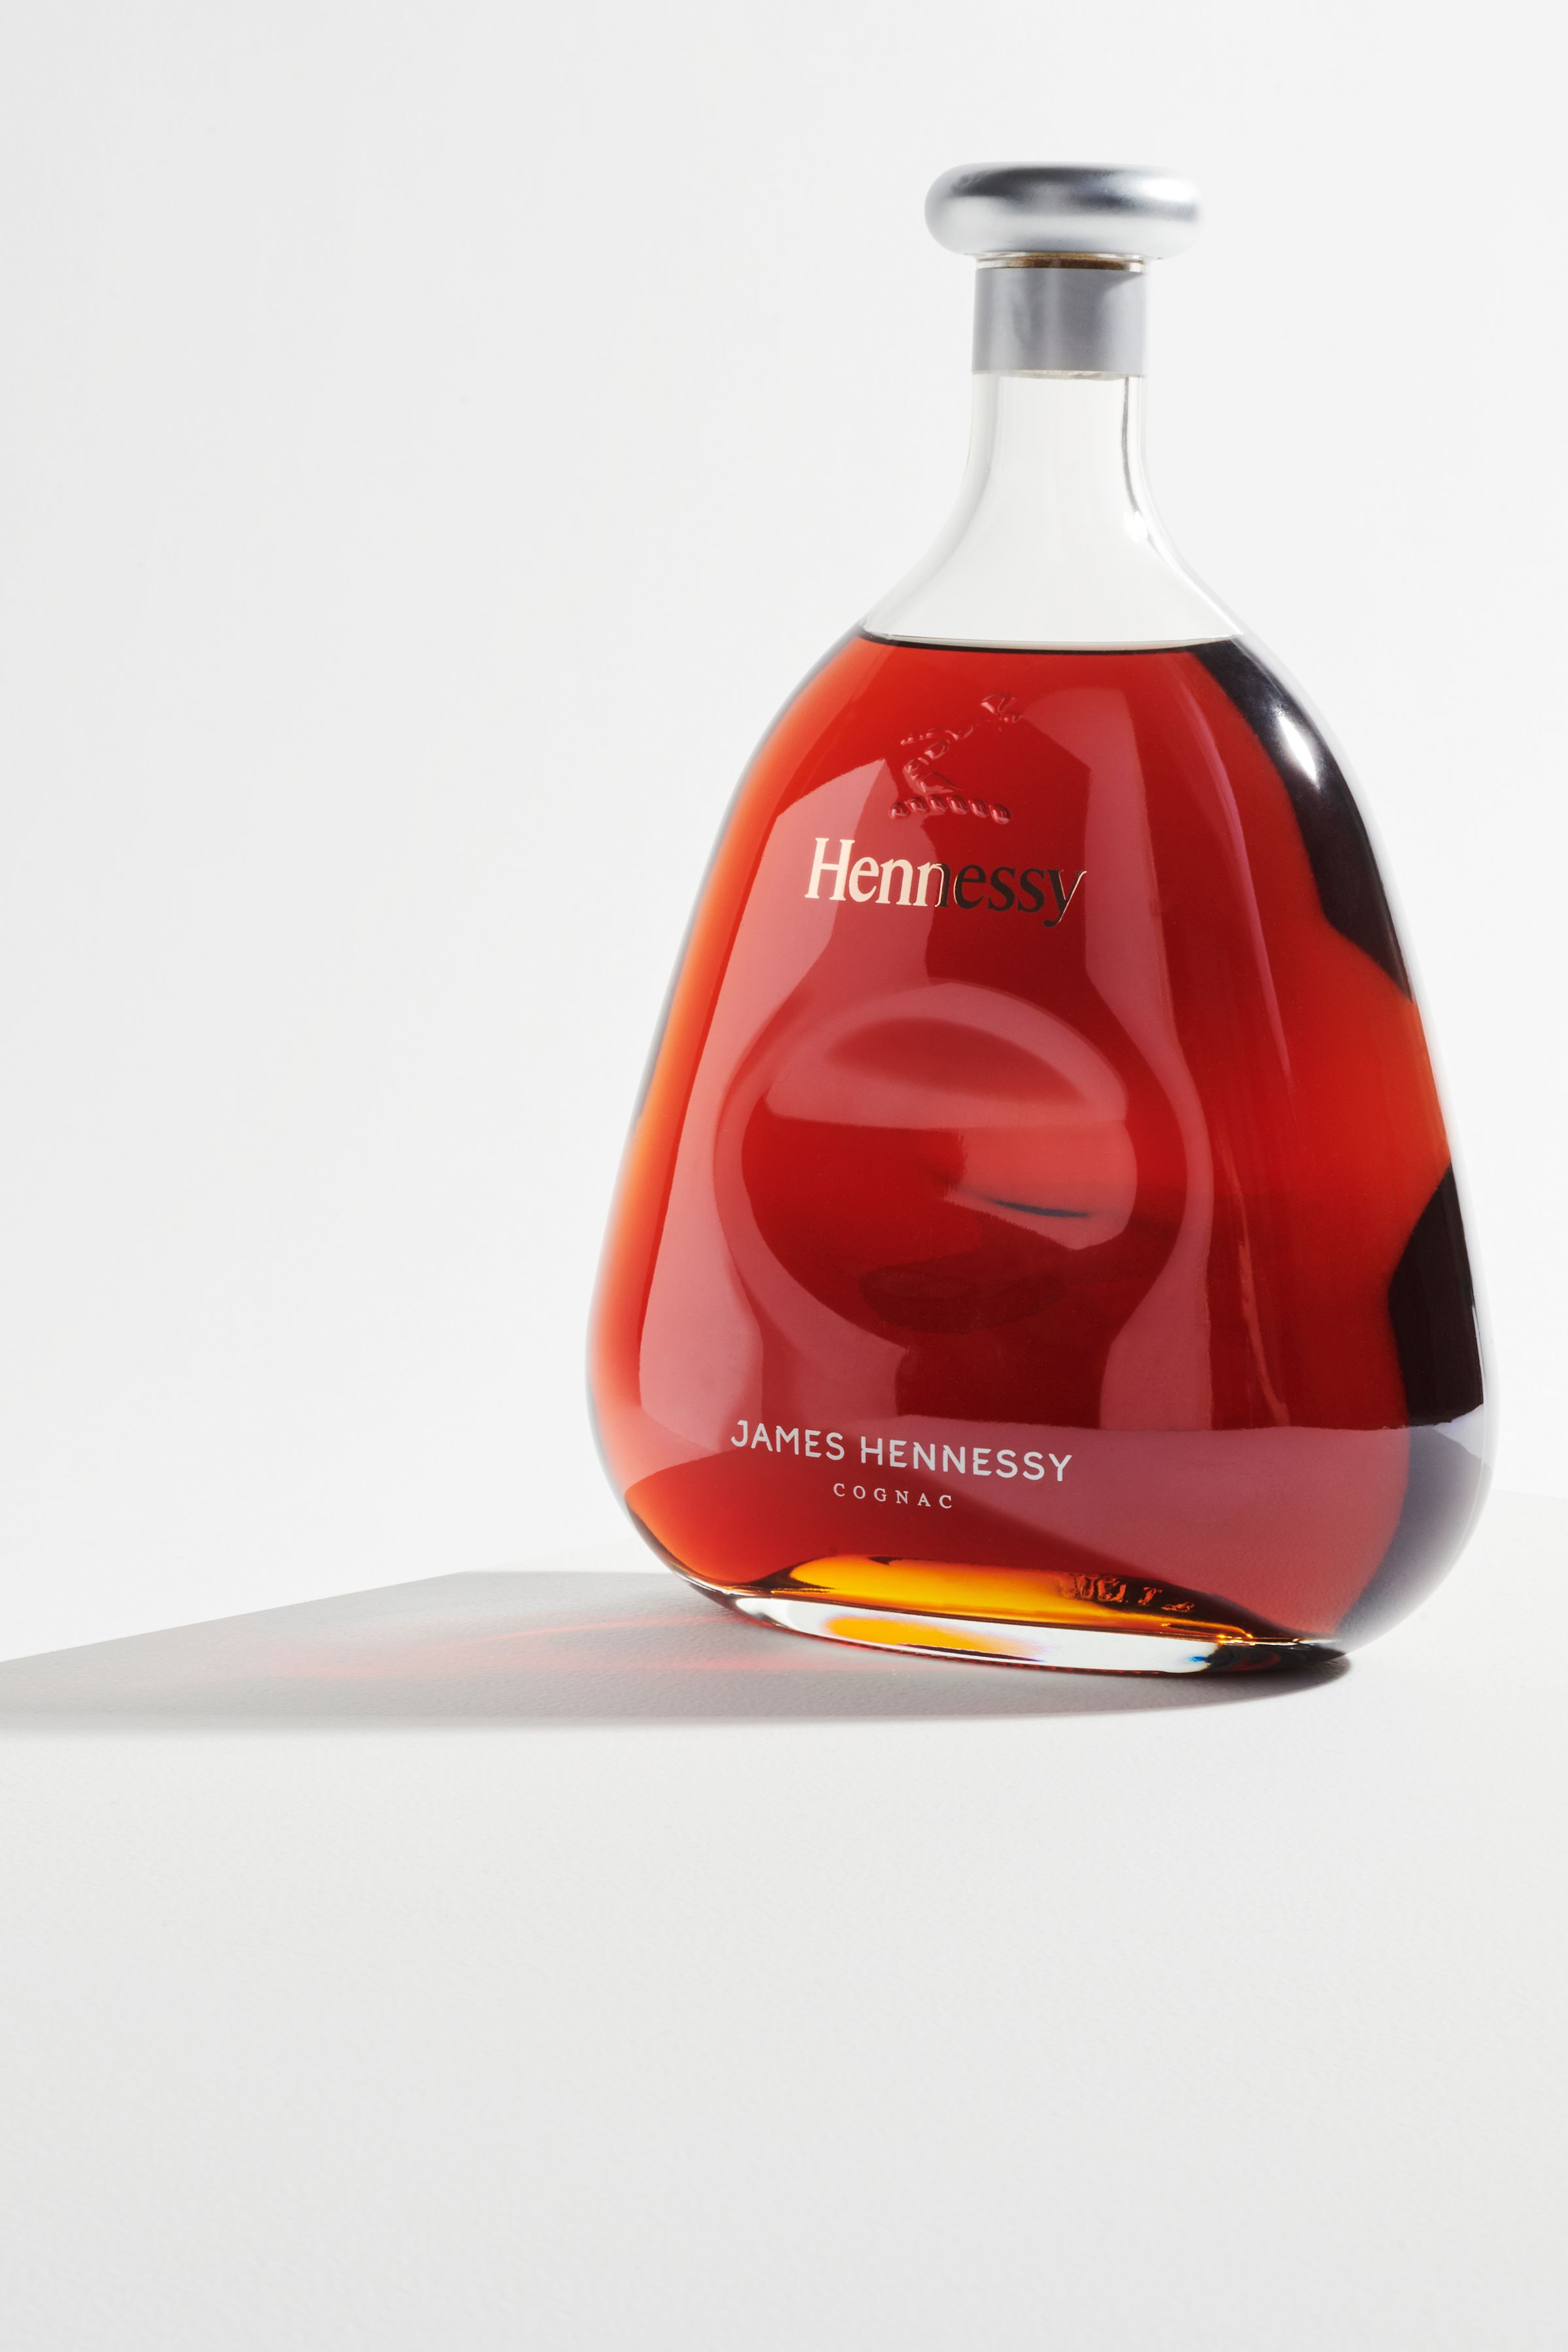 James Hennessy logo applied to bottle